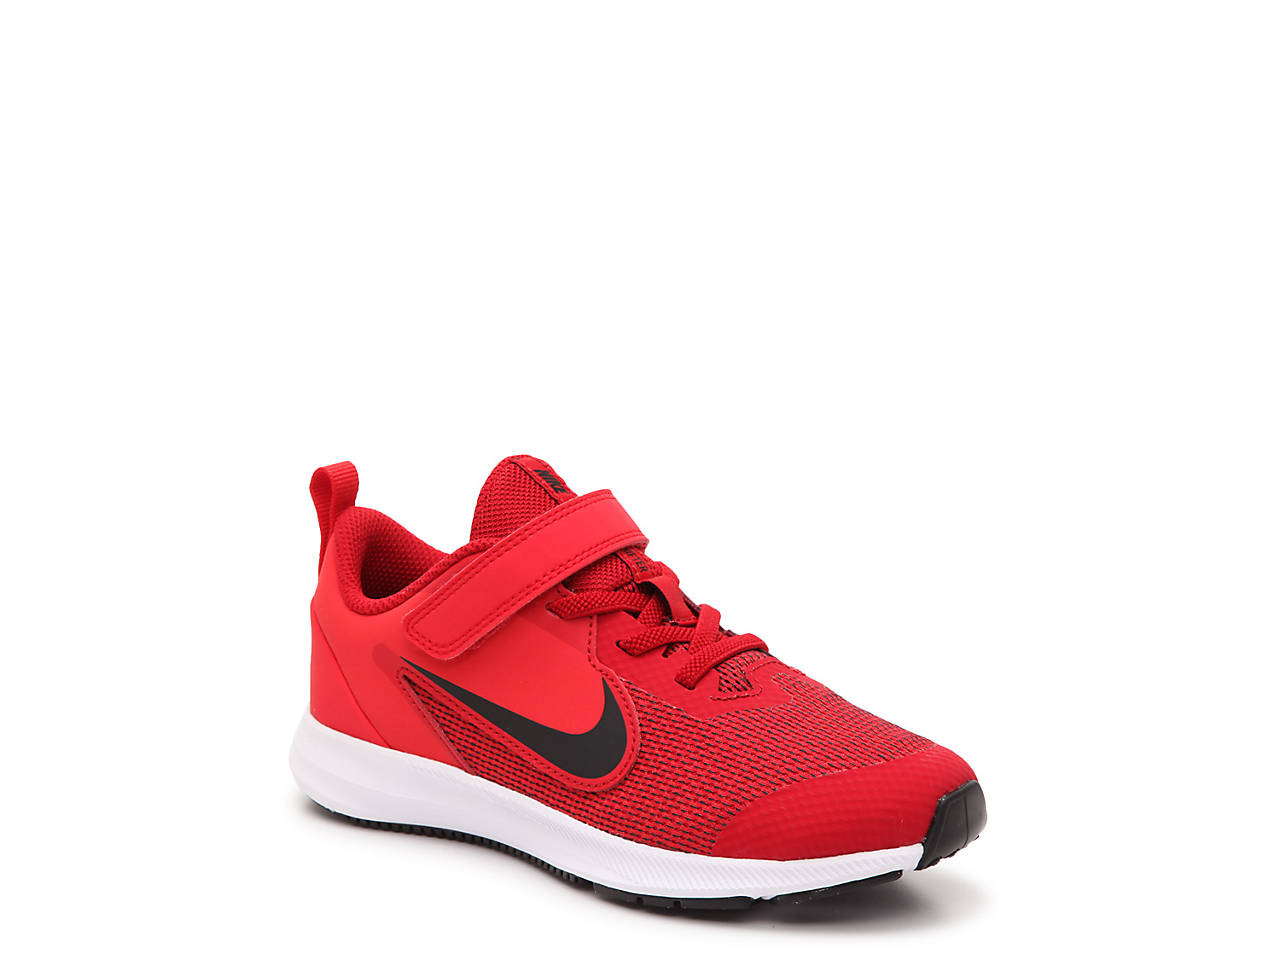 9d2573a47 Nike Downshifter 9 Toddler & Youth Running Shoe Kids Shoes | DSW